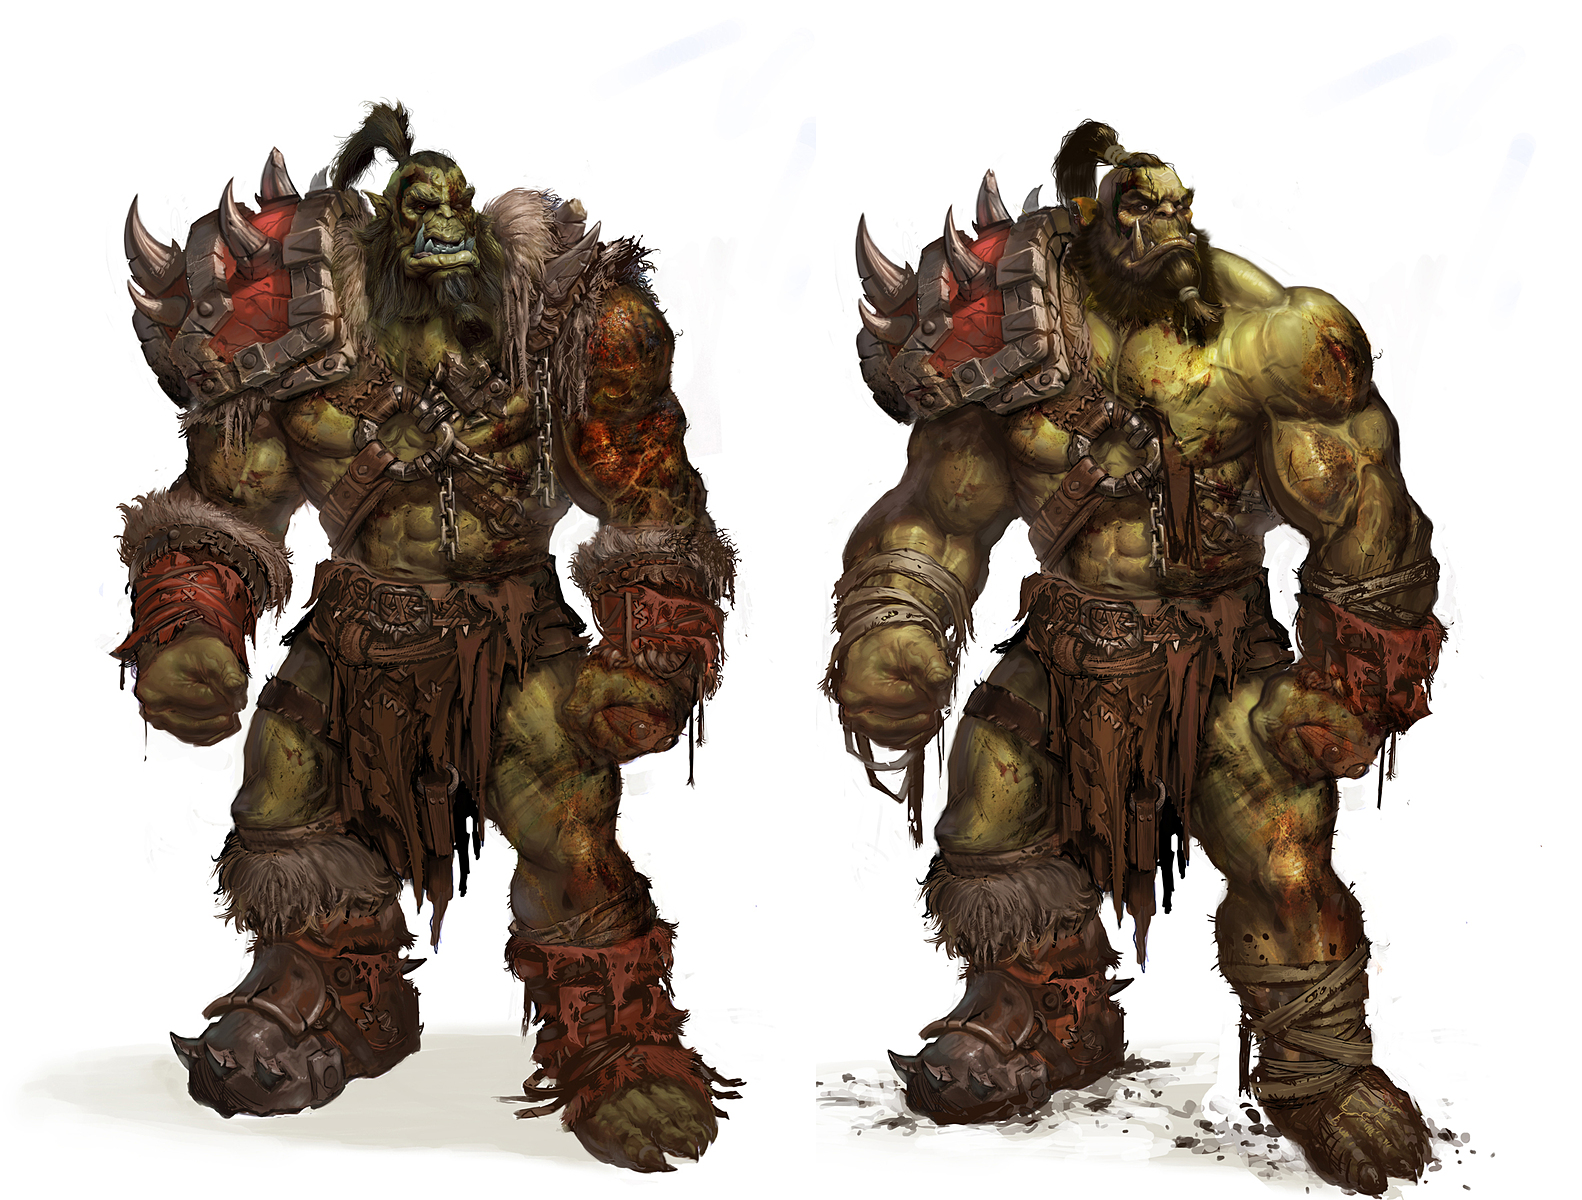 Materialize Your Favorite Wow/Lol Character: 5 Steps